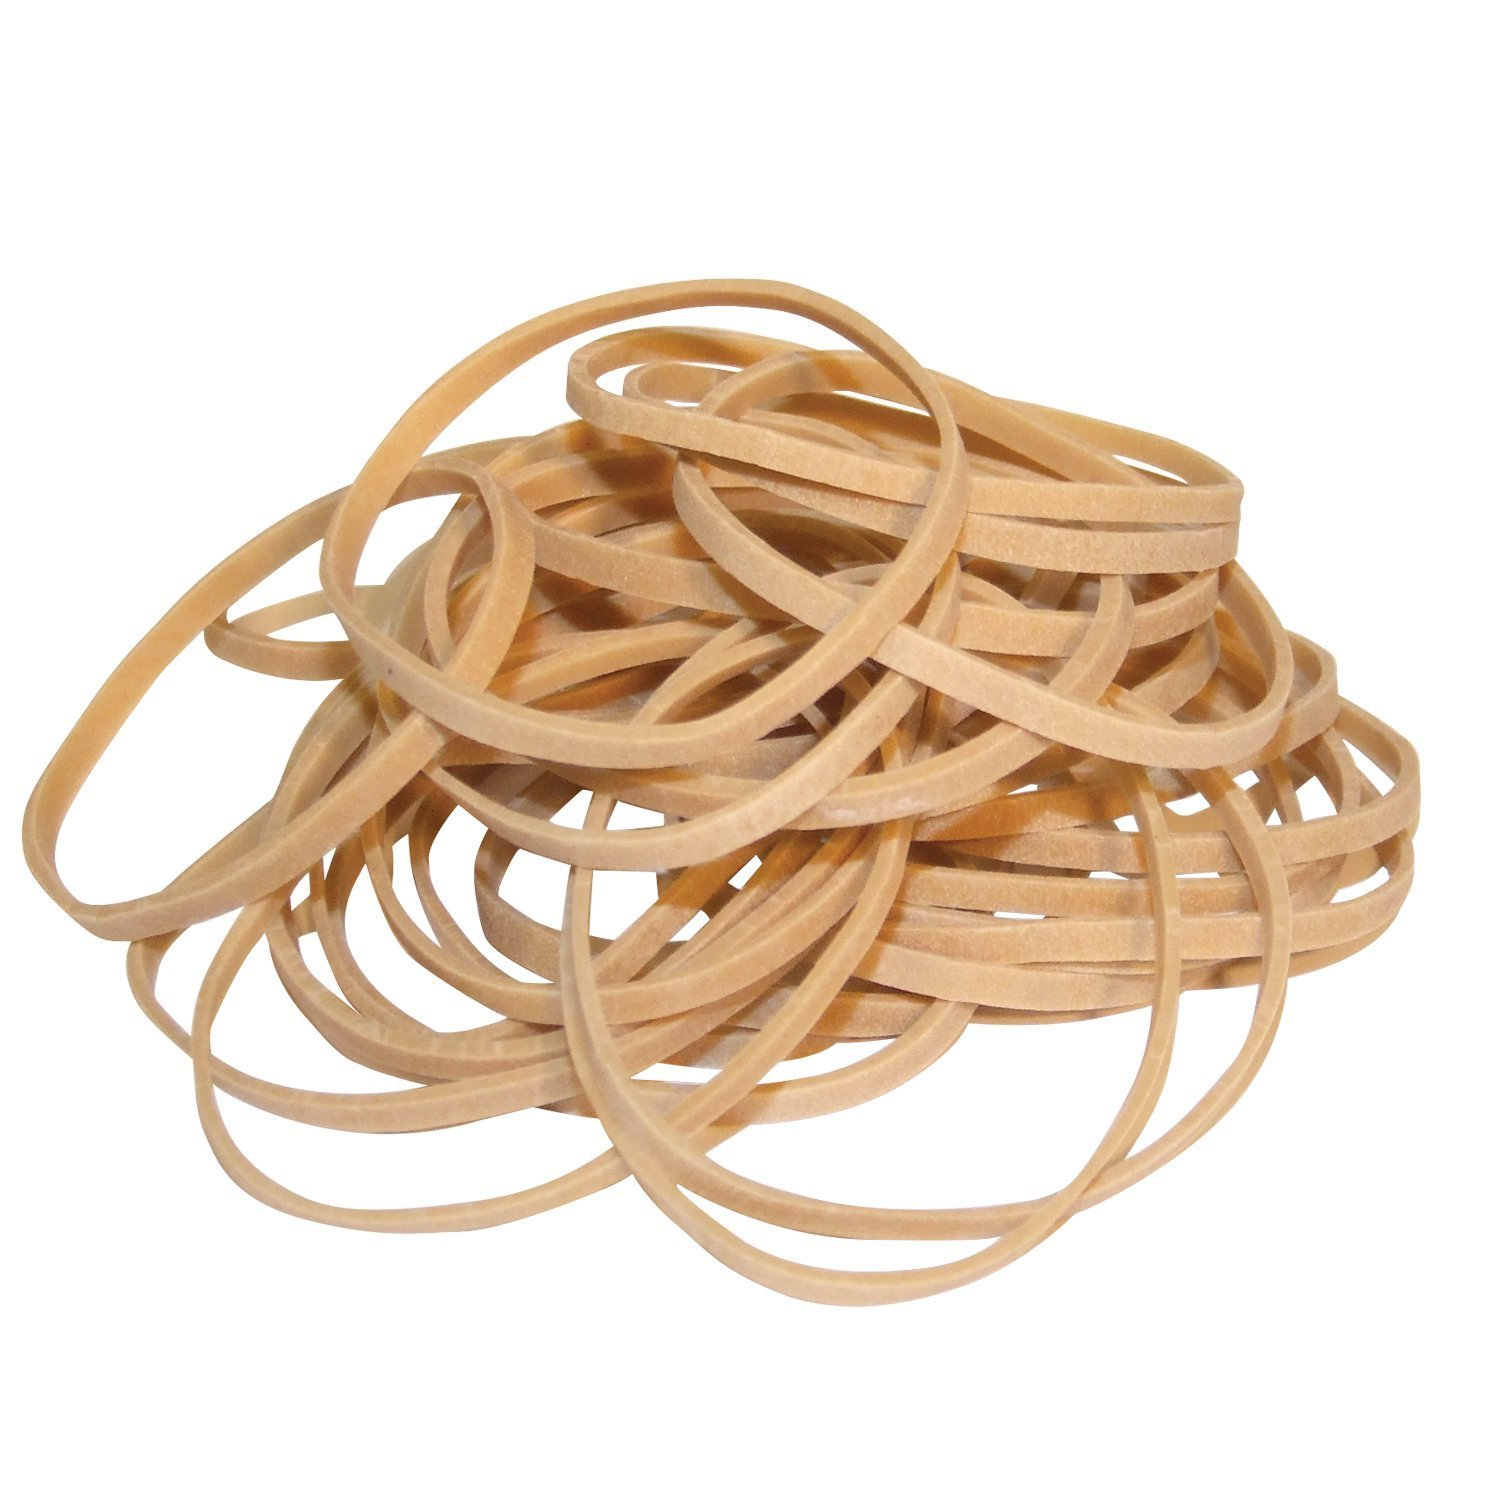 Rubber Bands ValueX Rubber Bands (No 33) 3x90mm 454g